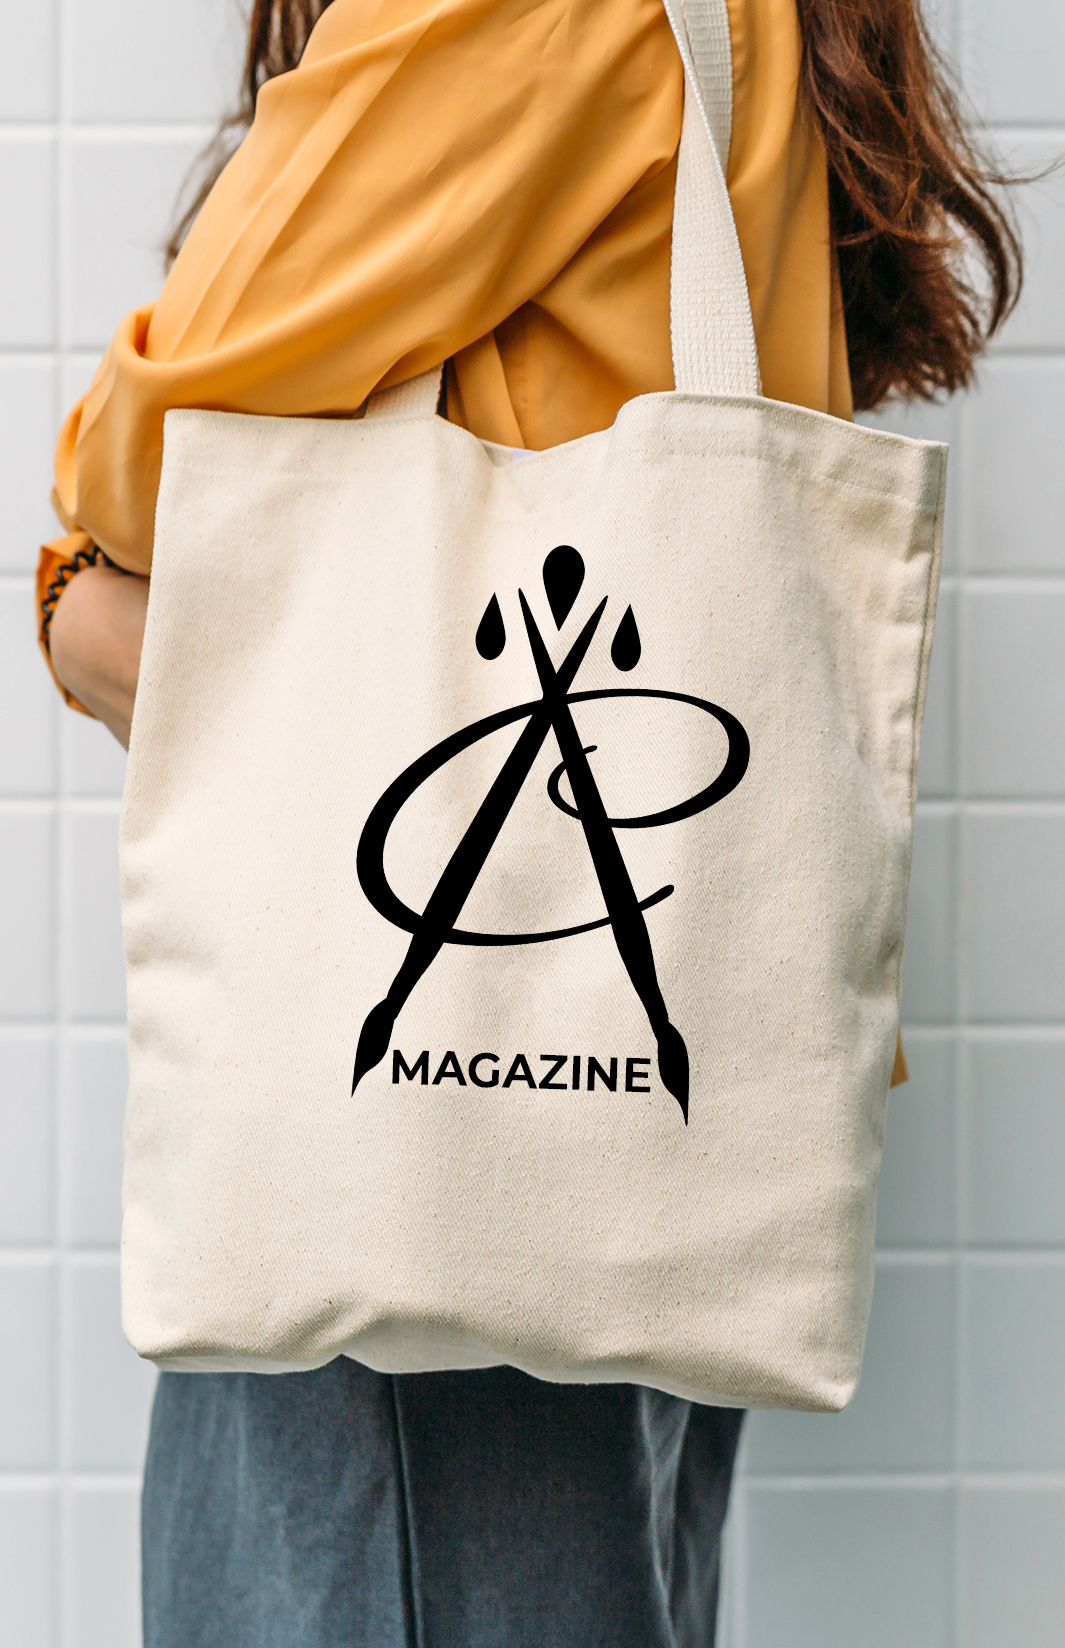 New Canvas Tote Bag- Natural